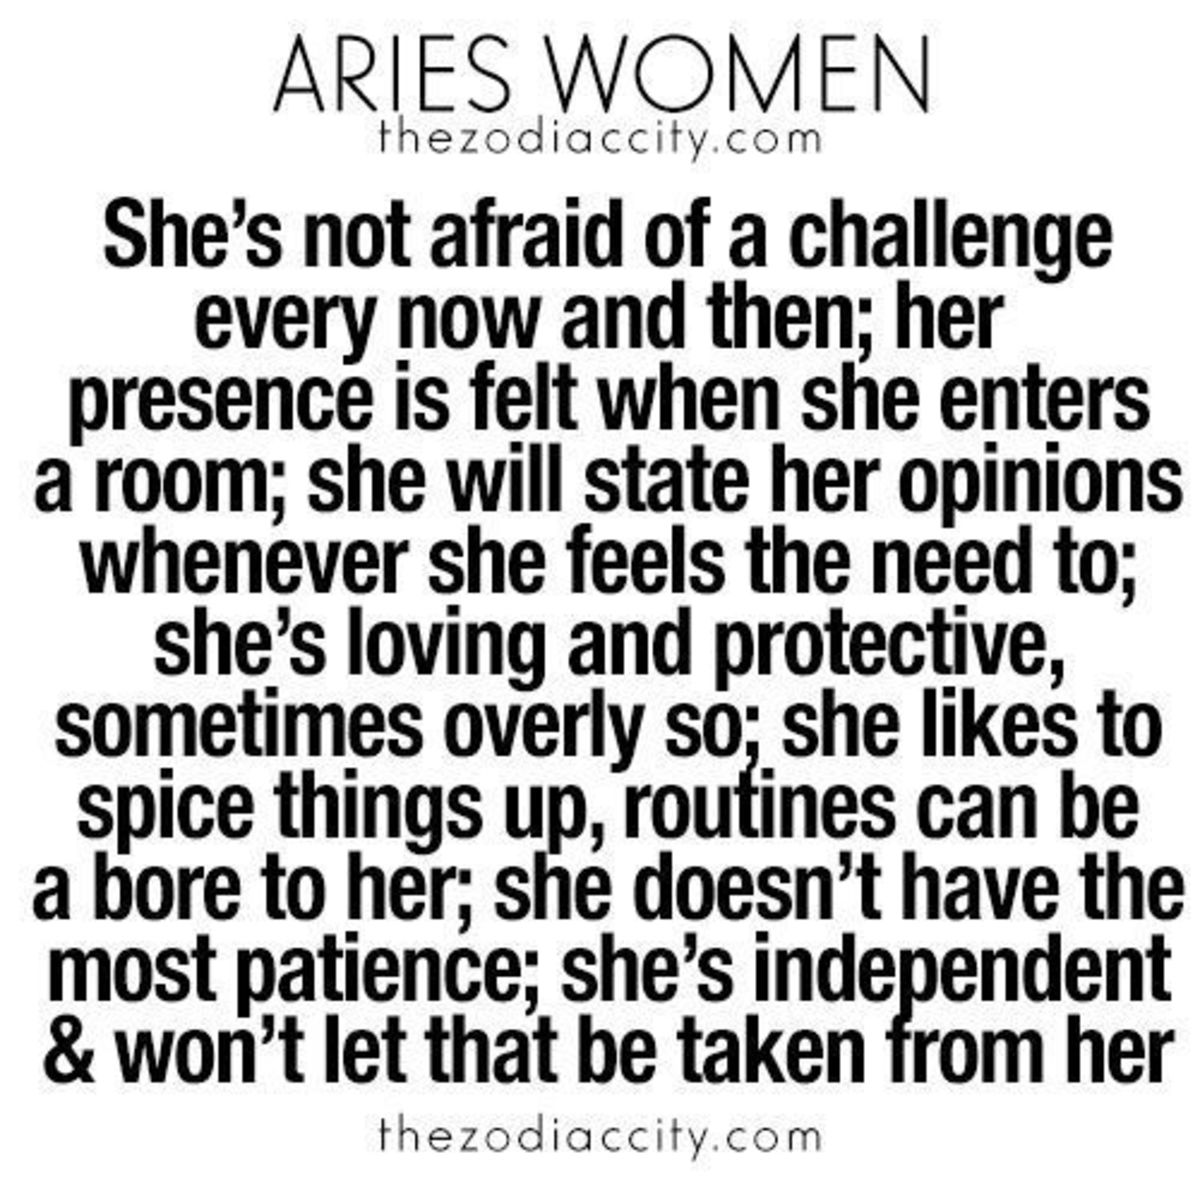 can-you-handle-the-dynamic-and-fierce-aries-woman